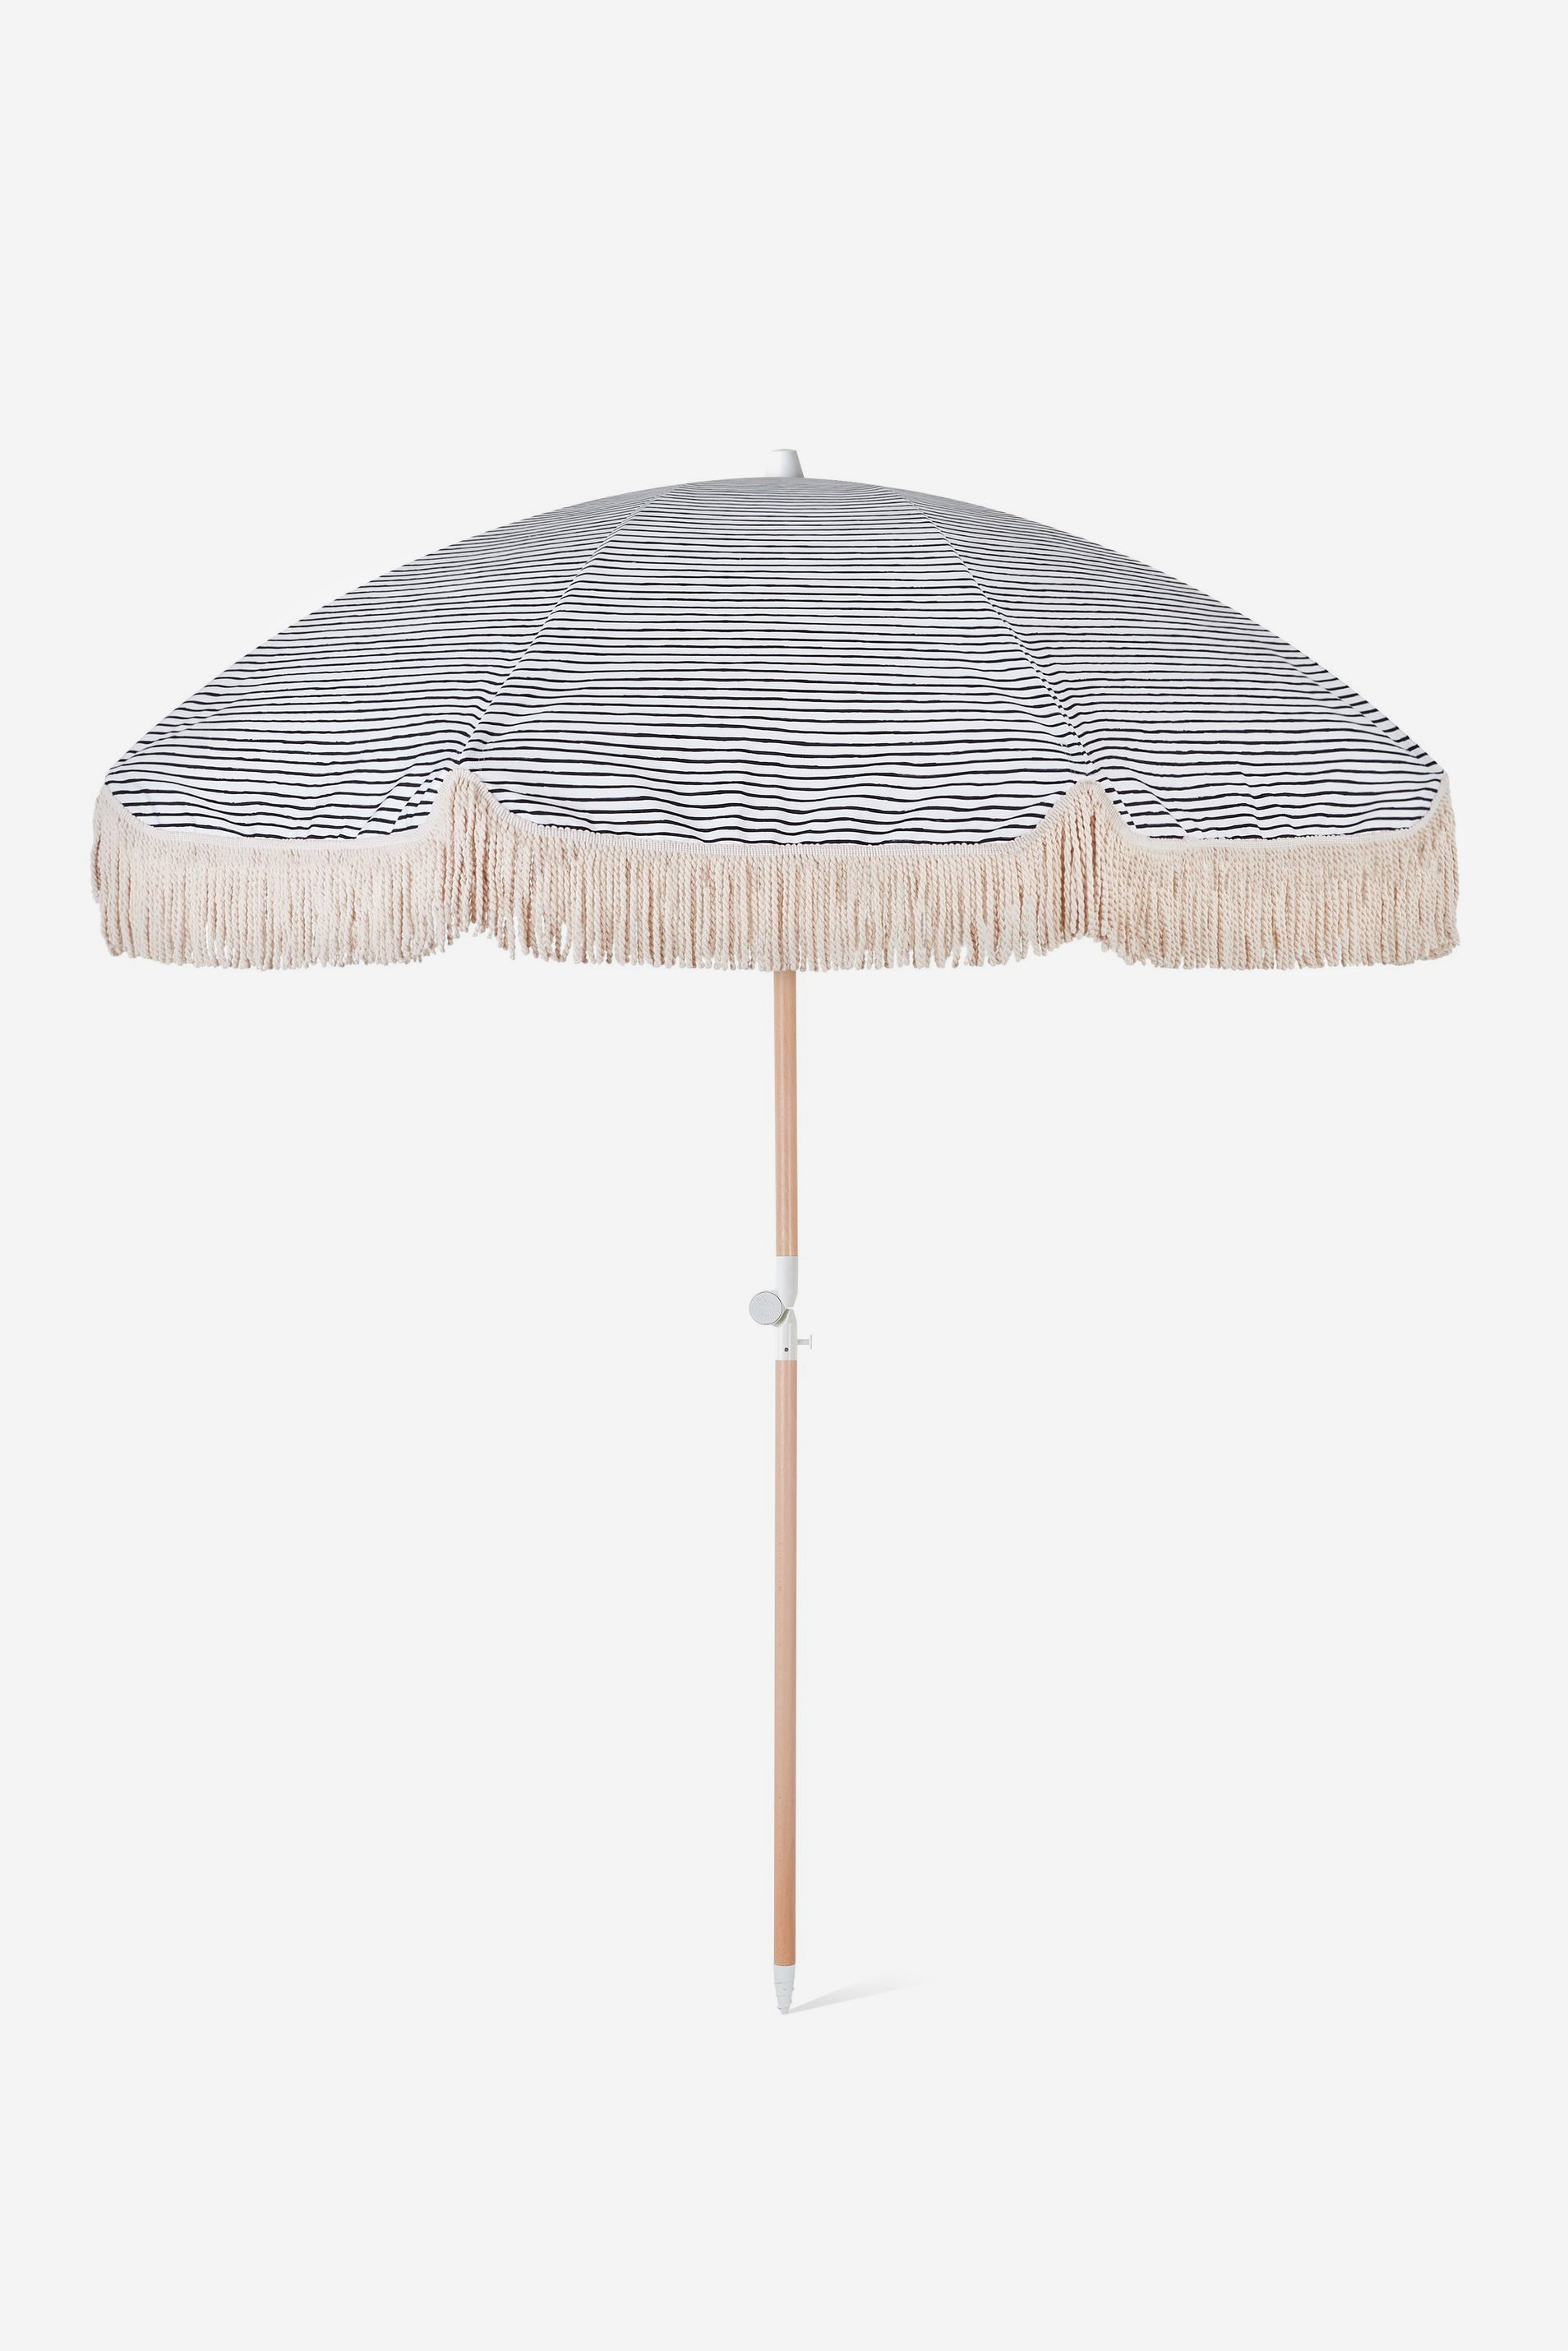 natural instinct beach umbrella